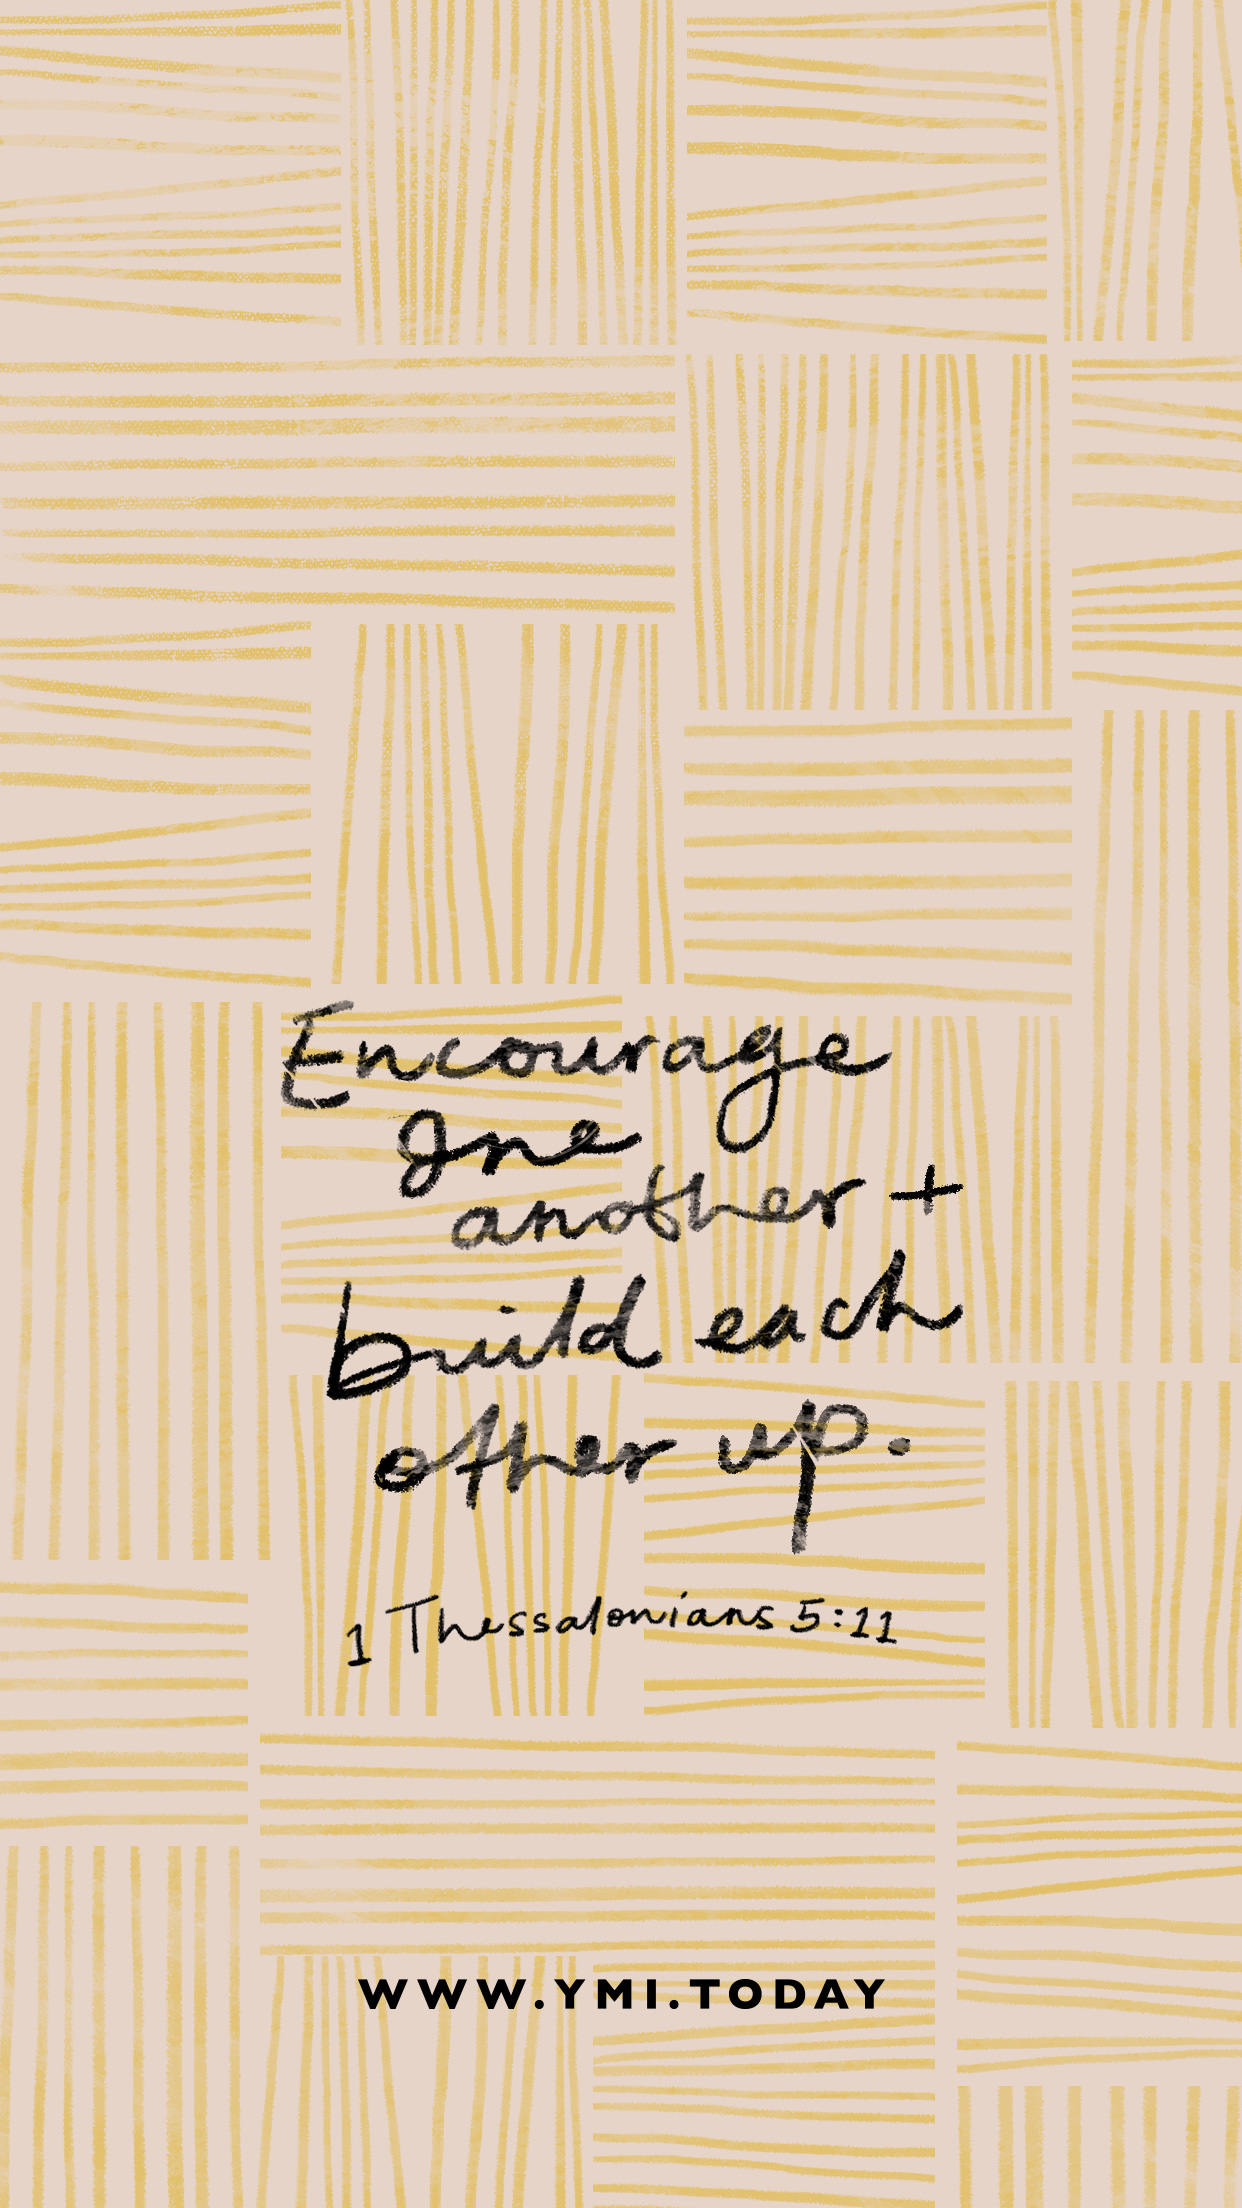 YMI June 2020 Phone Lockscreen - Encourage one another and build each other up. - 1 Thessalonians 5:11